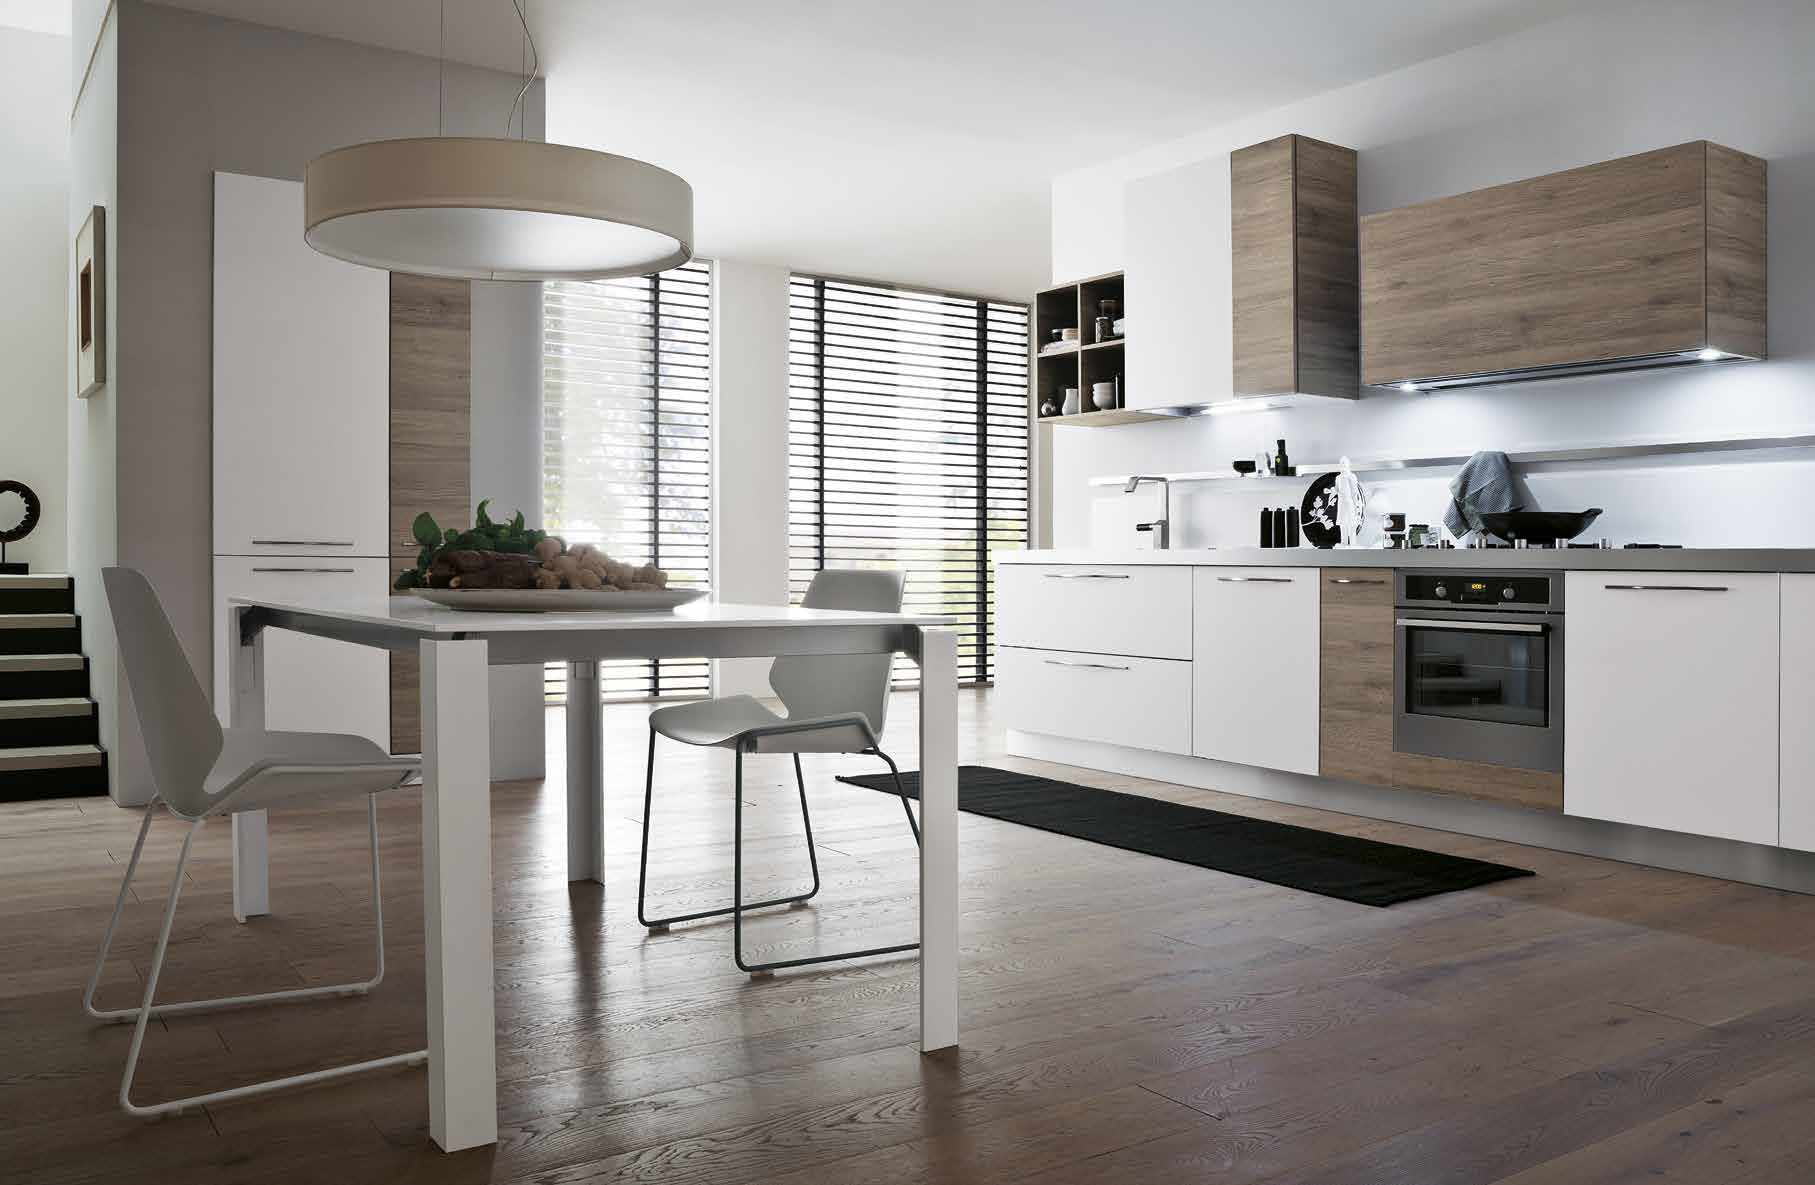 Outlet cucine veneto amazing outlet cucine brescia for Cucine outlet brescia